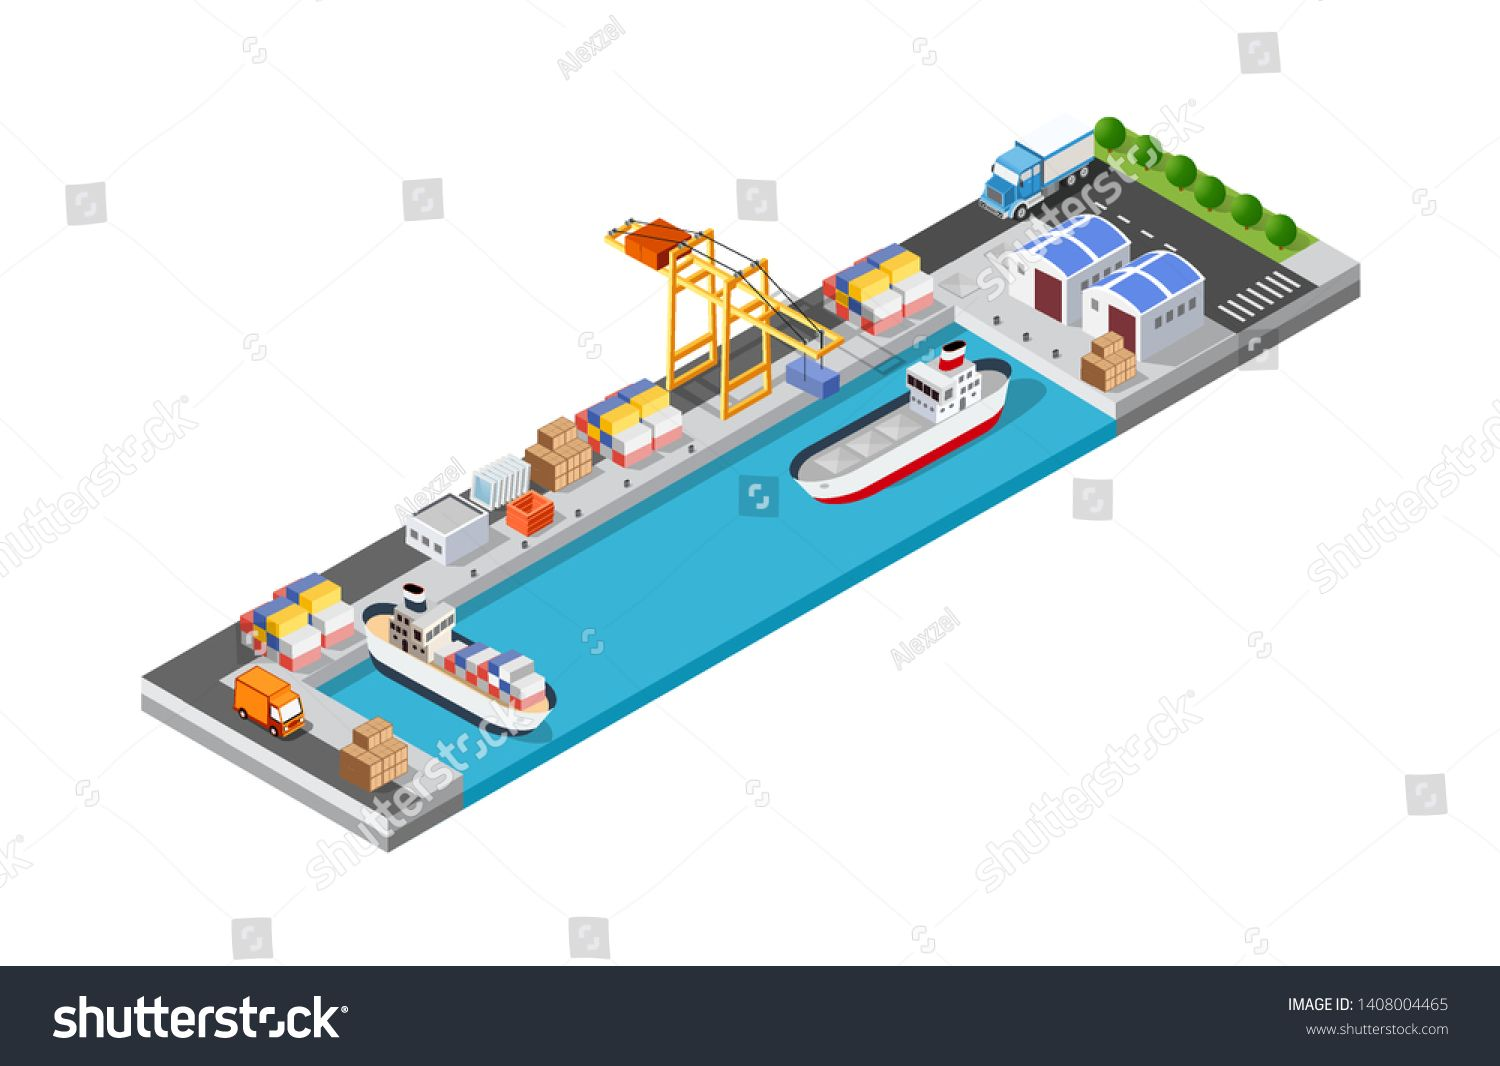 Port cargo ship transport logistics seaport vector template with an isometric illustration. The sea with crane container and vessel. #Sponsored , #AD, #logistics#seaport#vector#transport